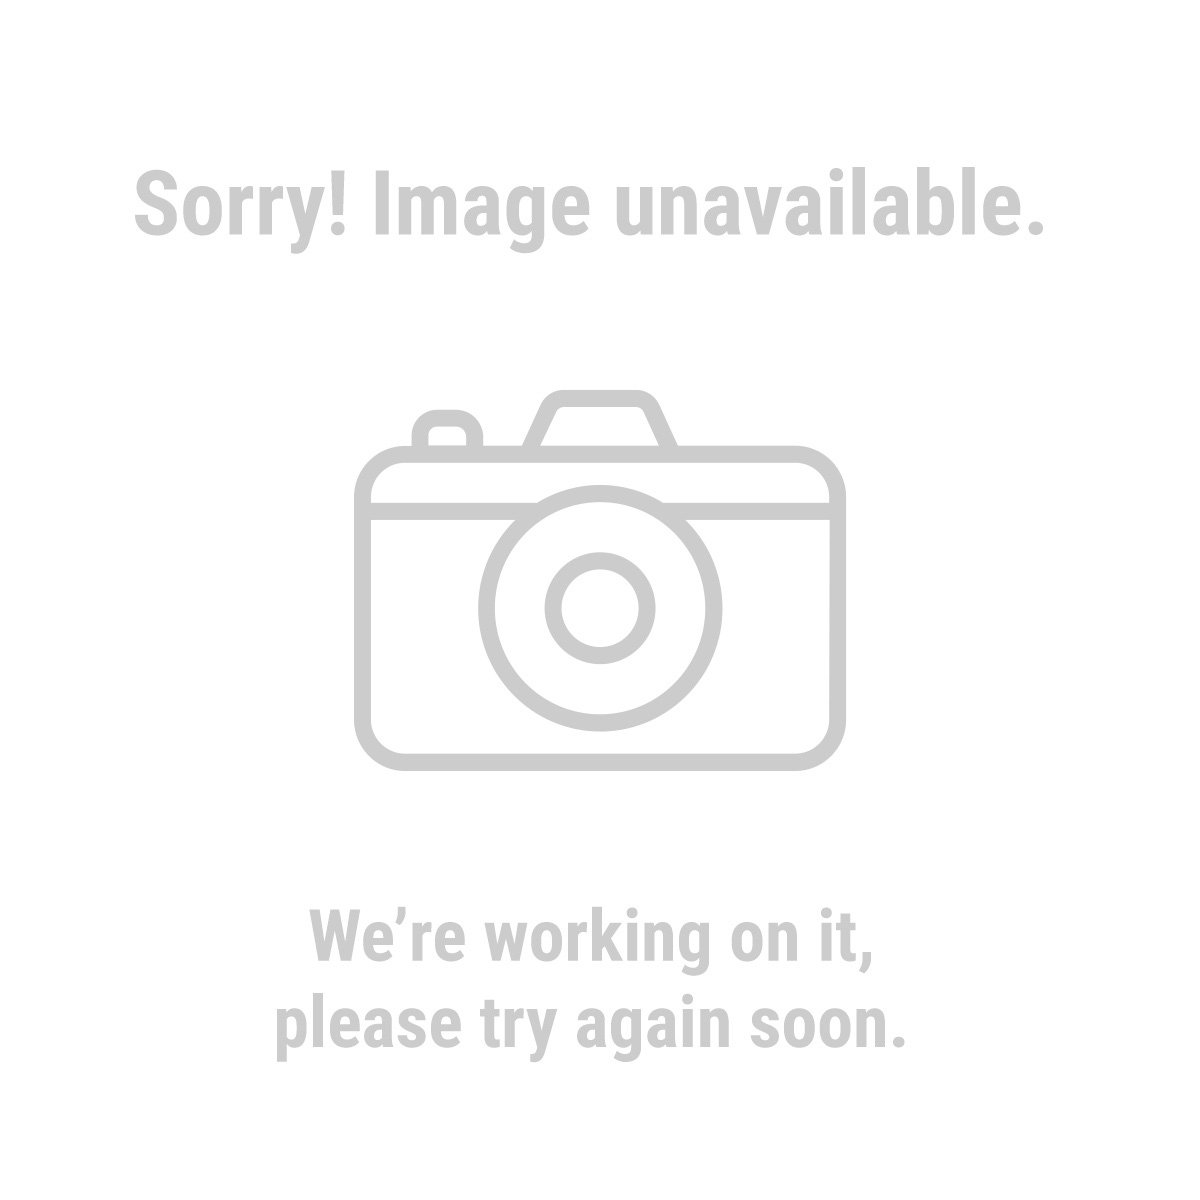 Haul-Master 60397 1000 Lb. Steel Loading Ramps, Set of Two